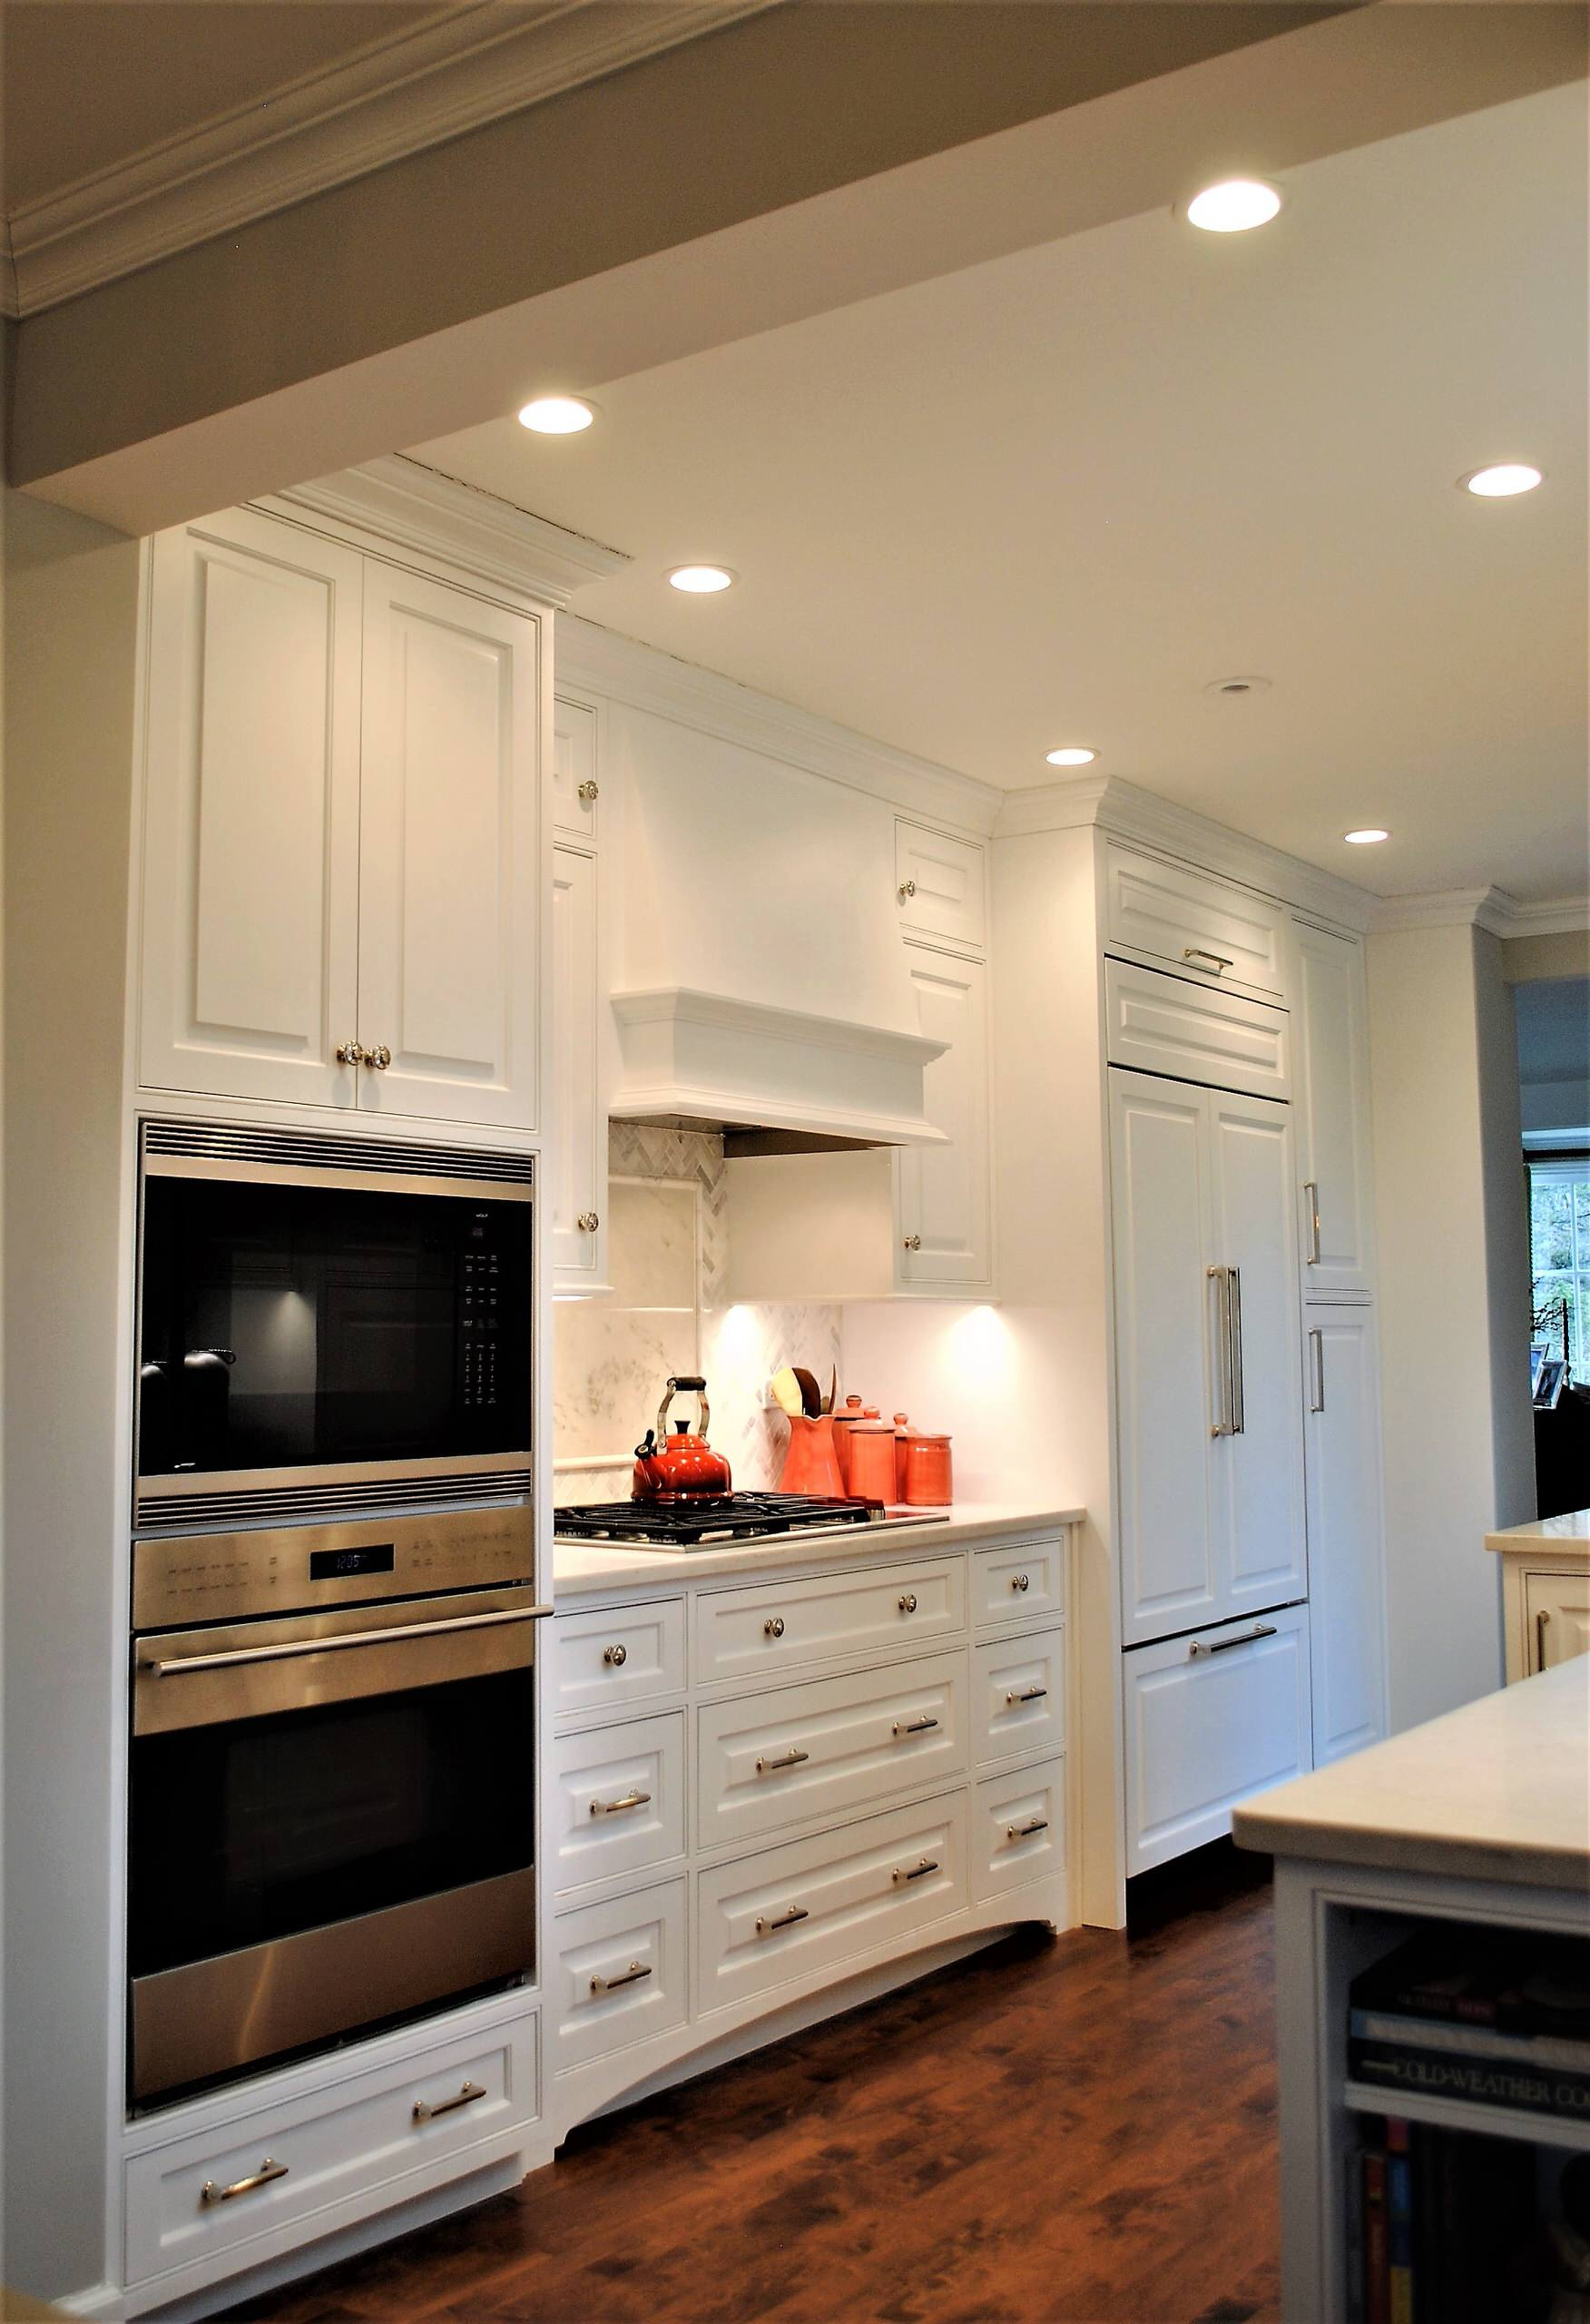 Lake Forest Home - Kitchen